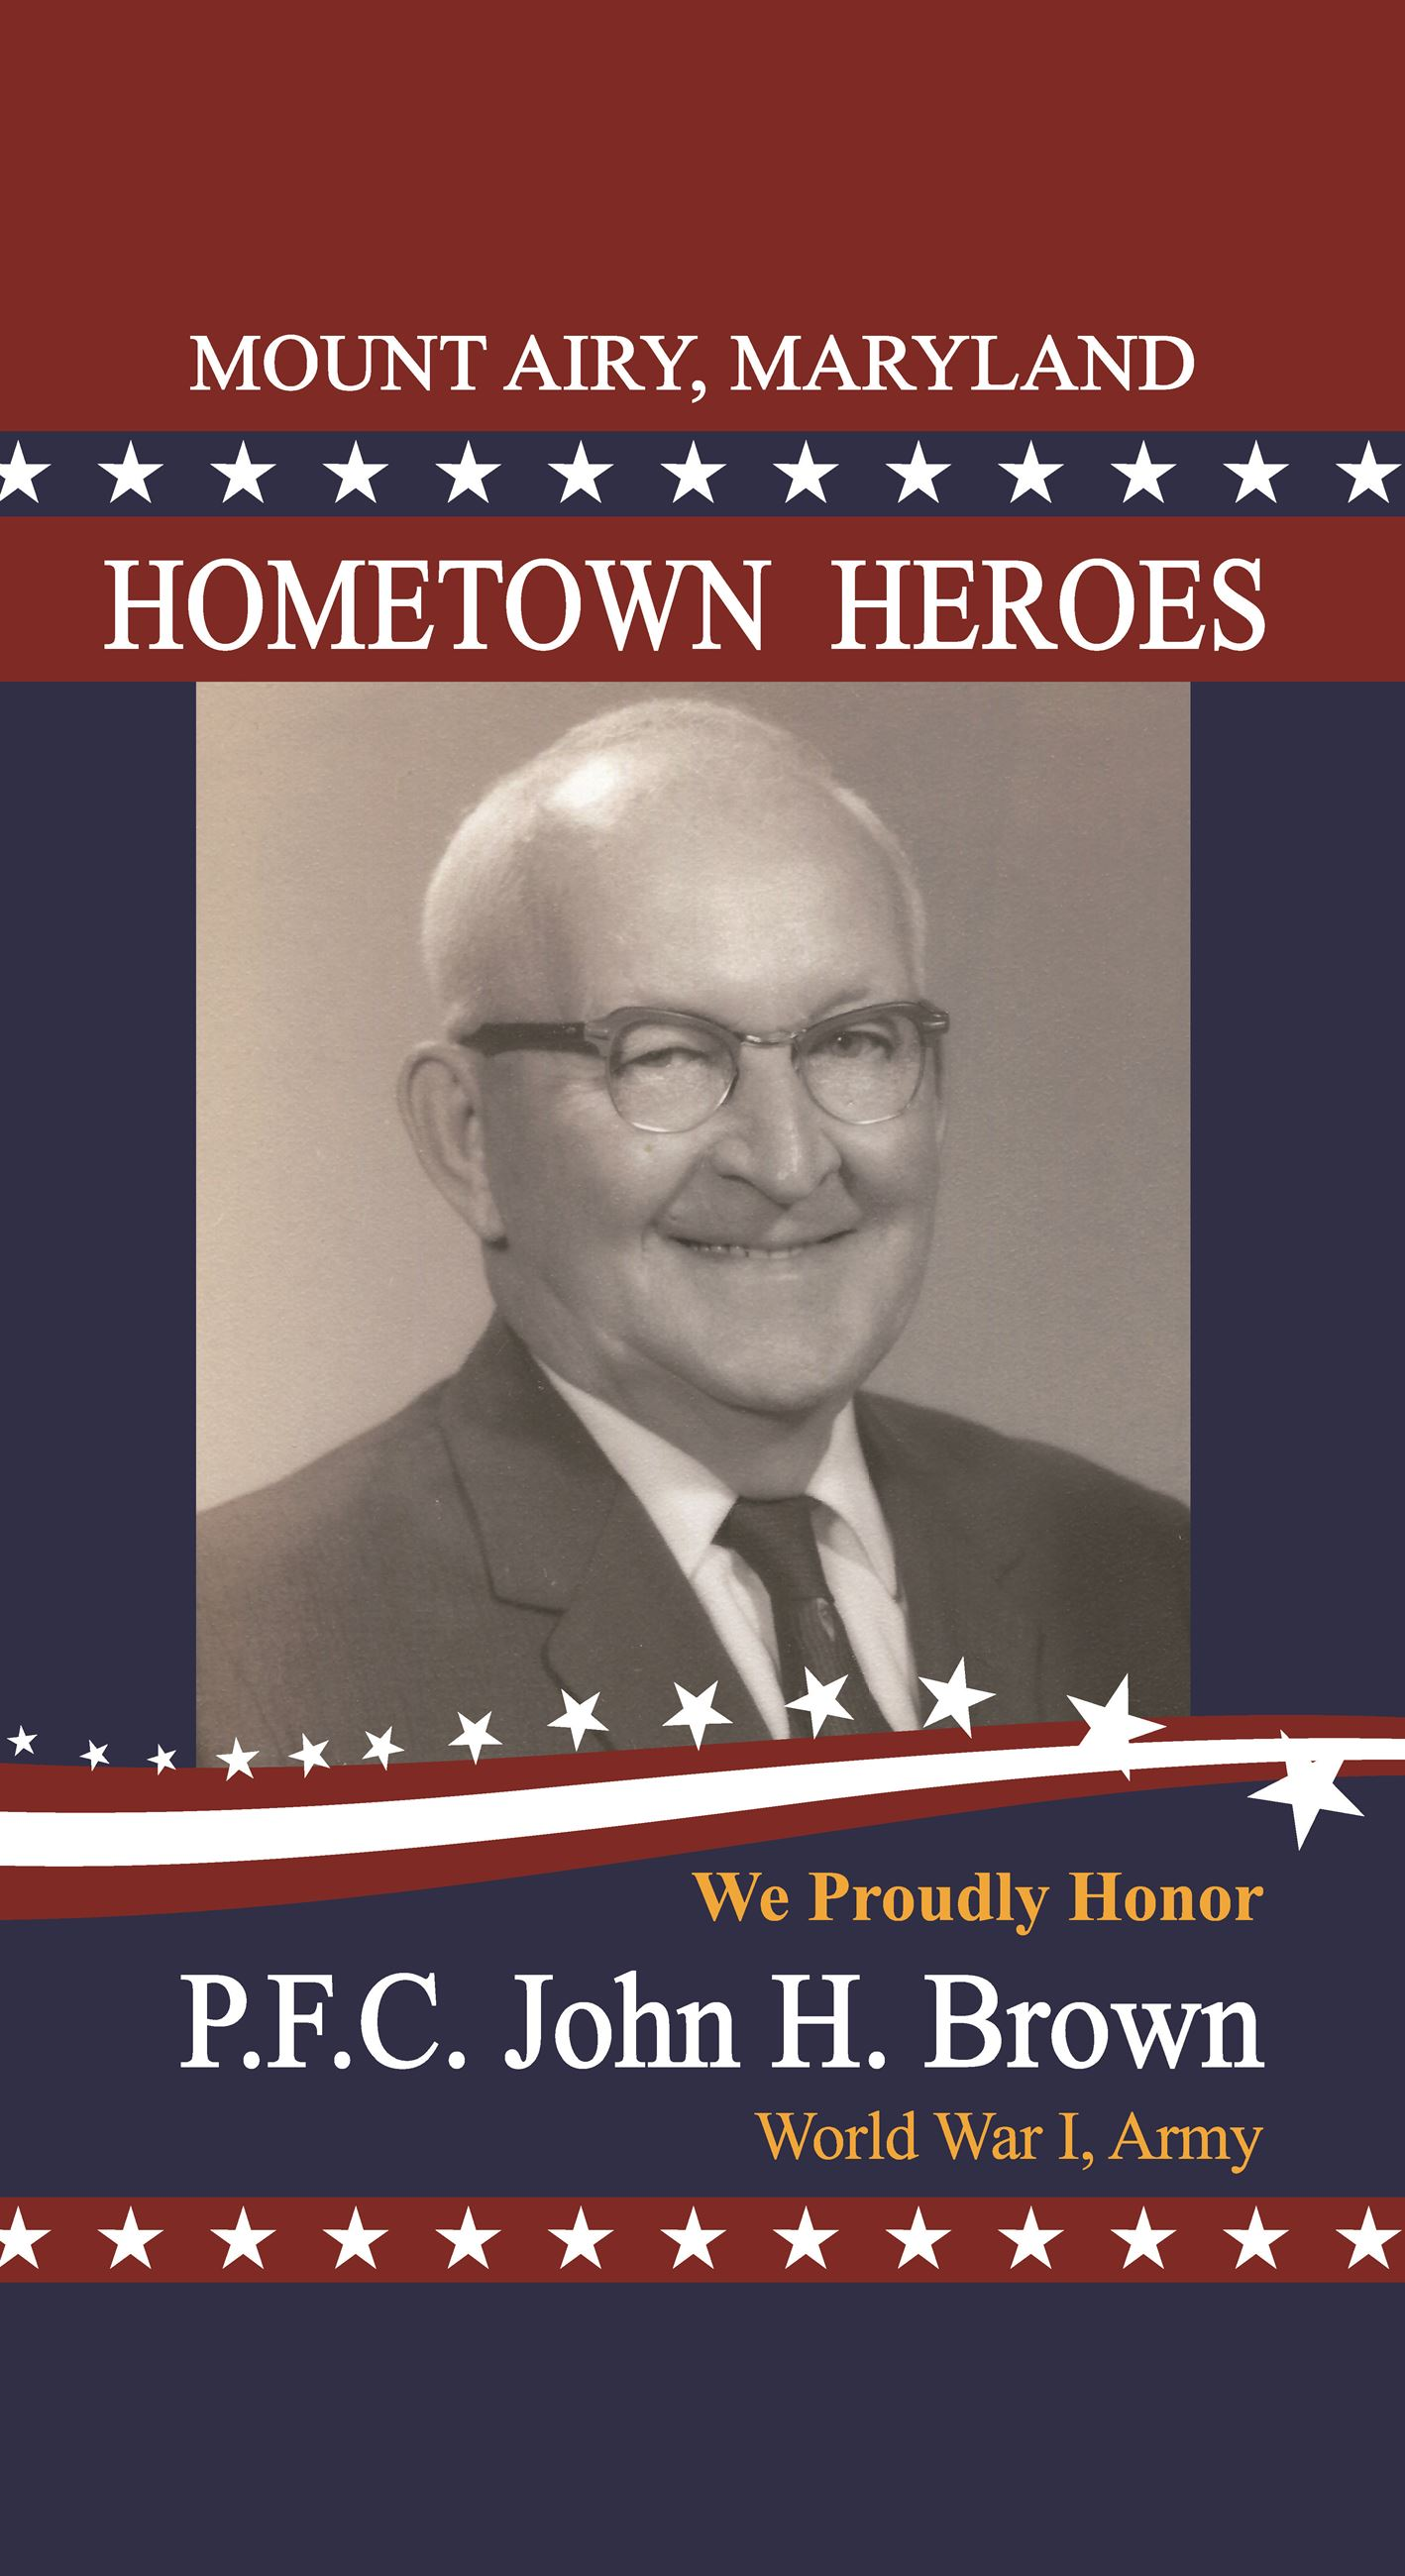 JohnHBrown_MtAiryHeroes-Flag-24x44-Proof002